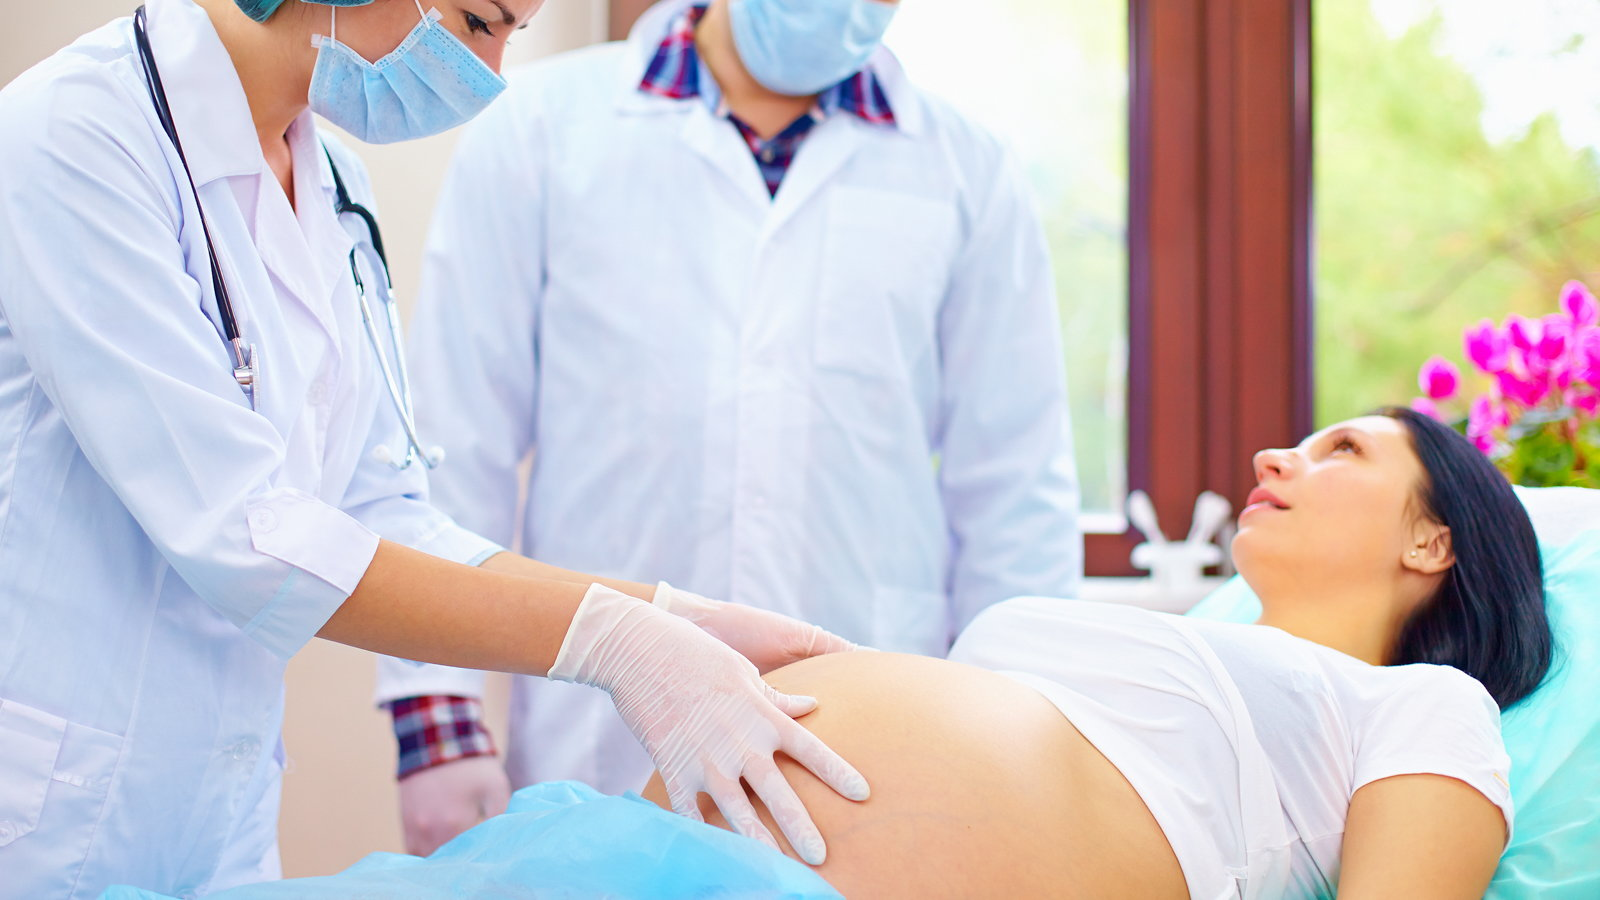 pregnant woman being examined at the hospital